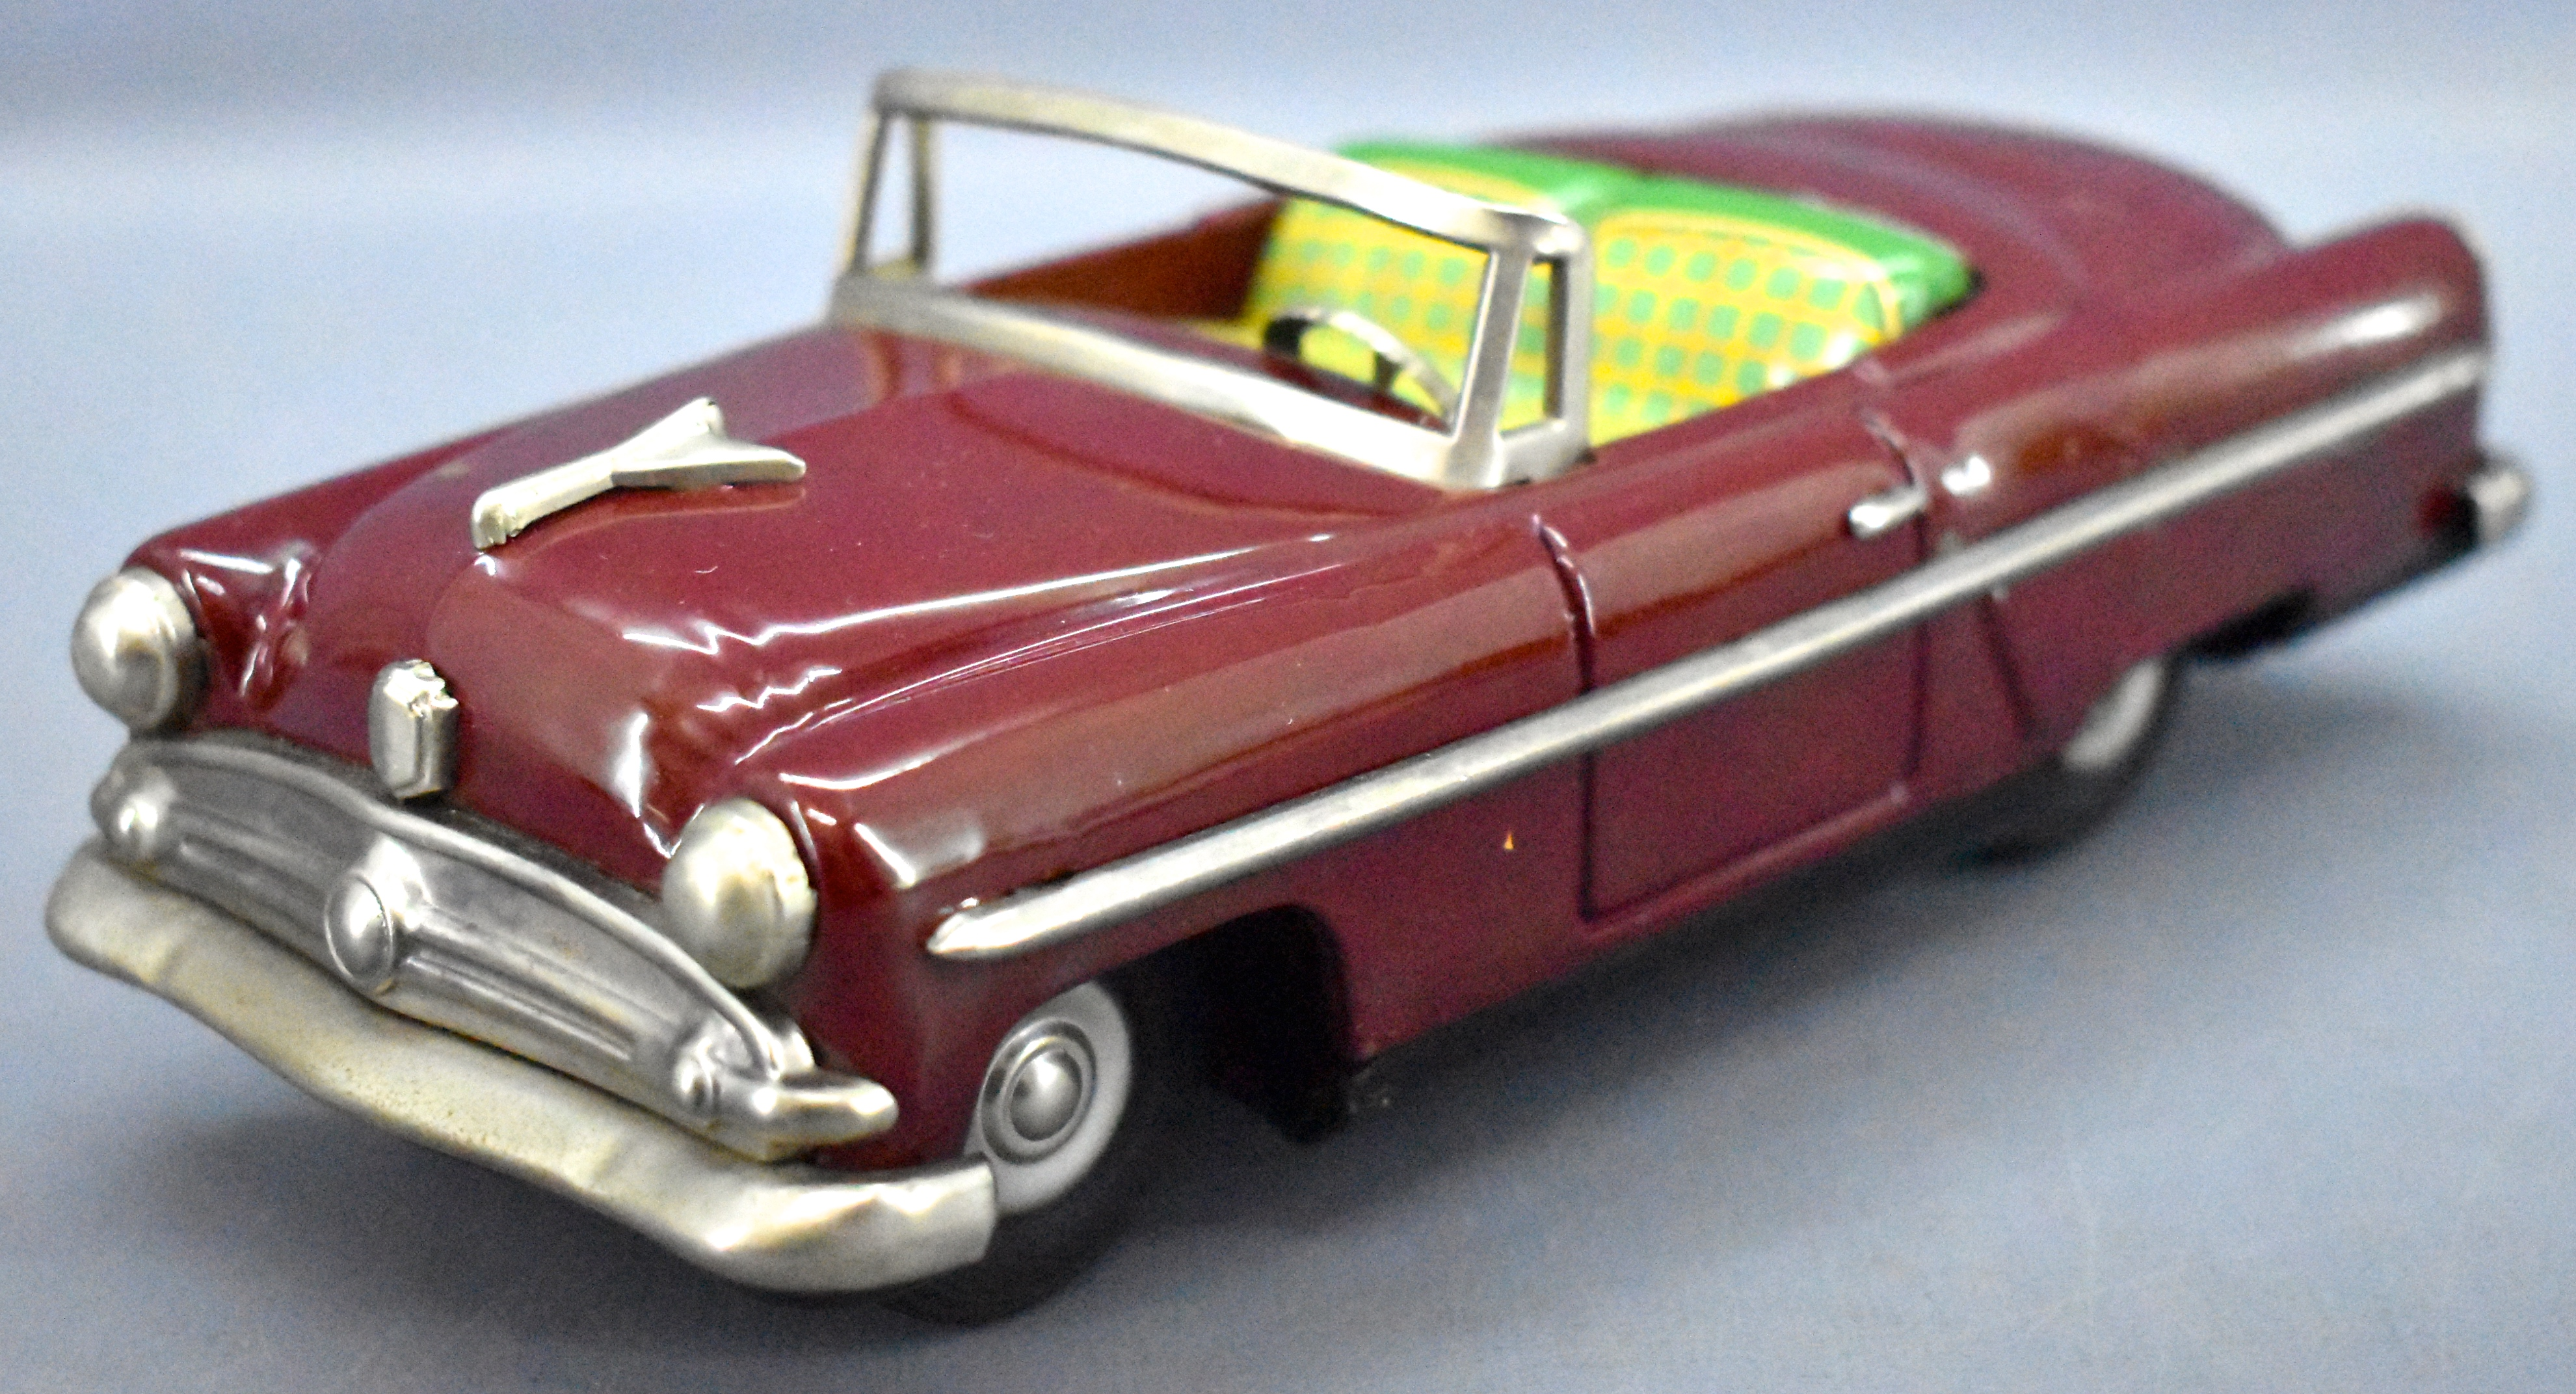 Day 1 Clarence Young Auto Hobby  Promo Cars, Model Kits, Die Cast And Advertising